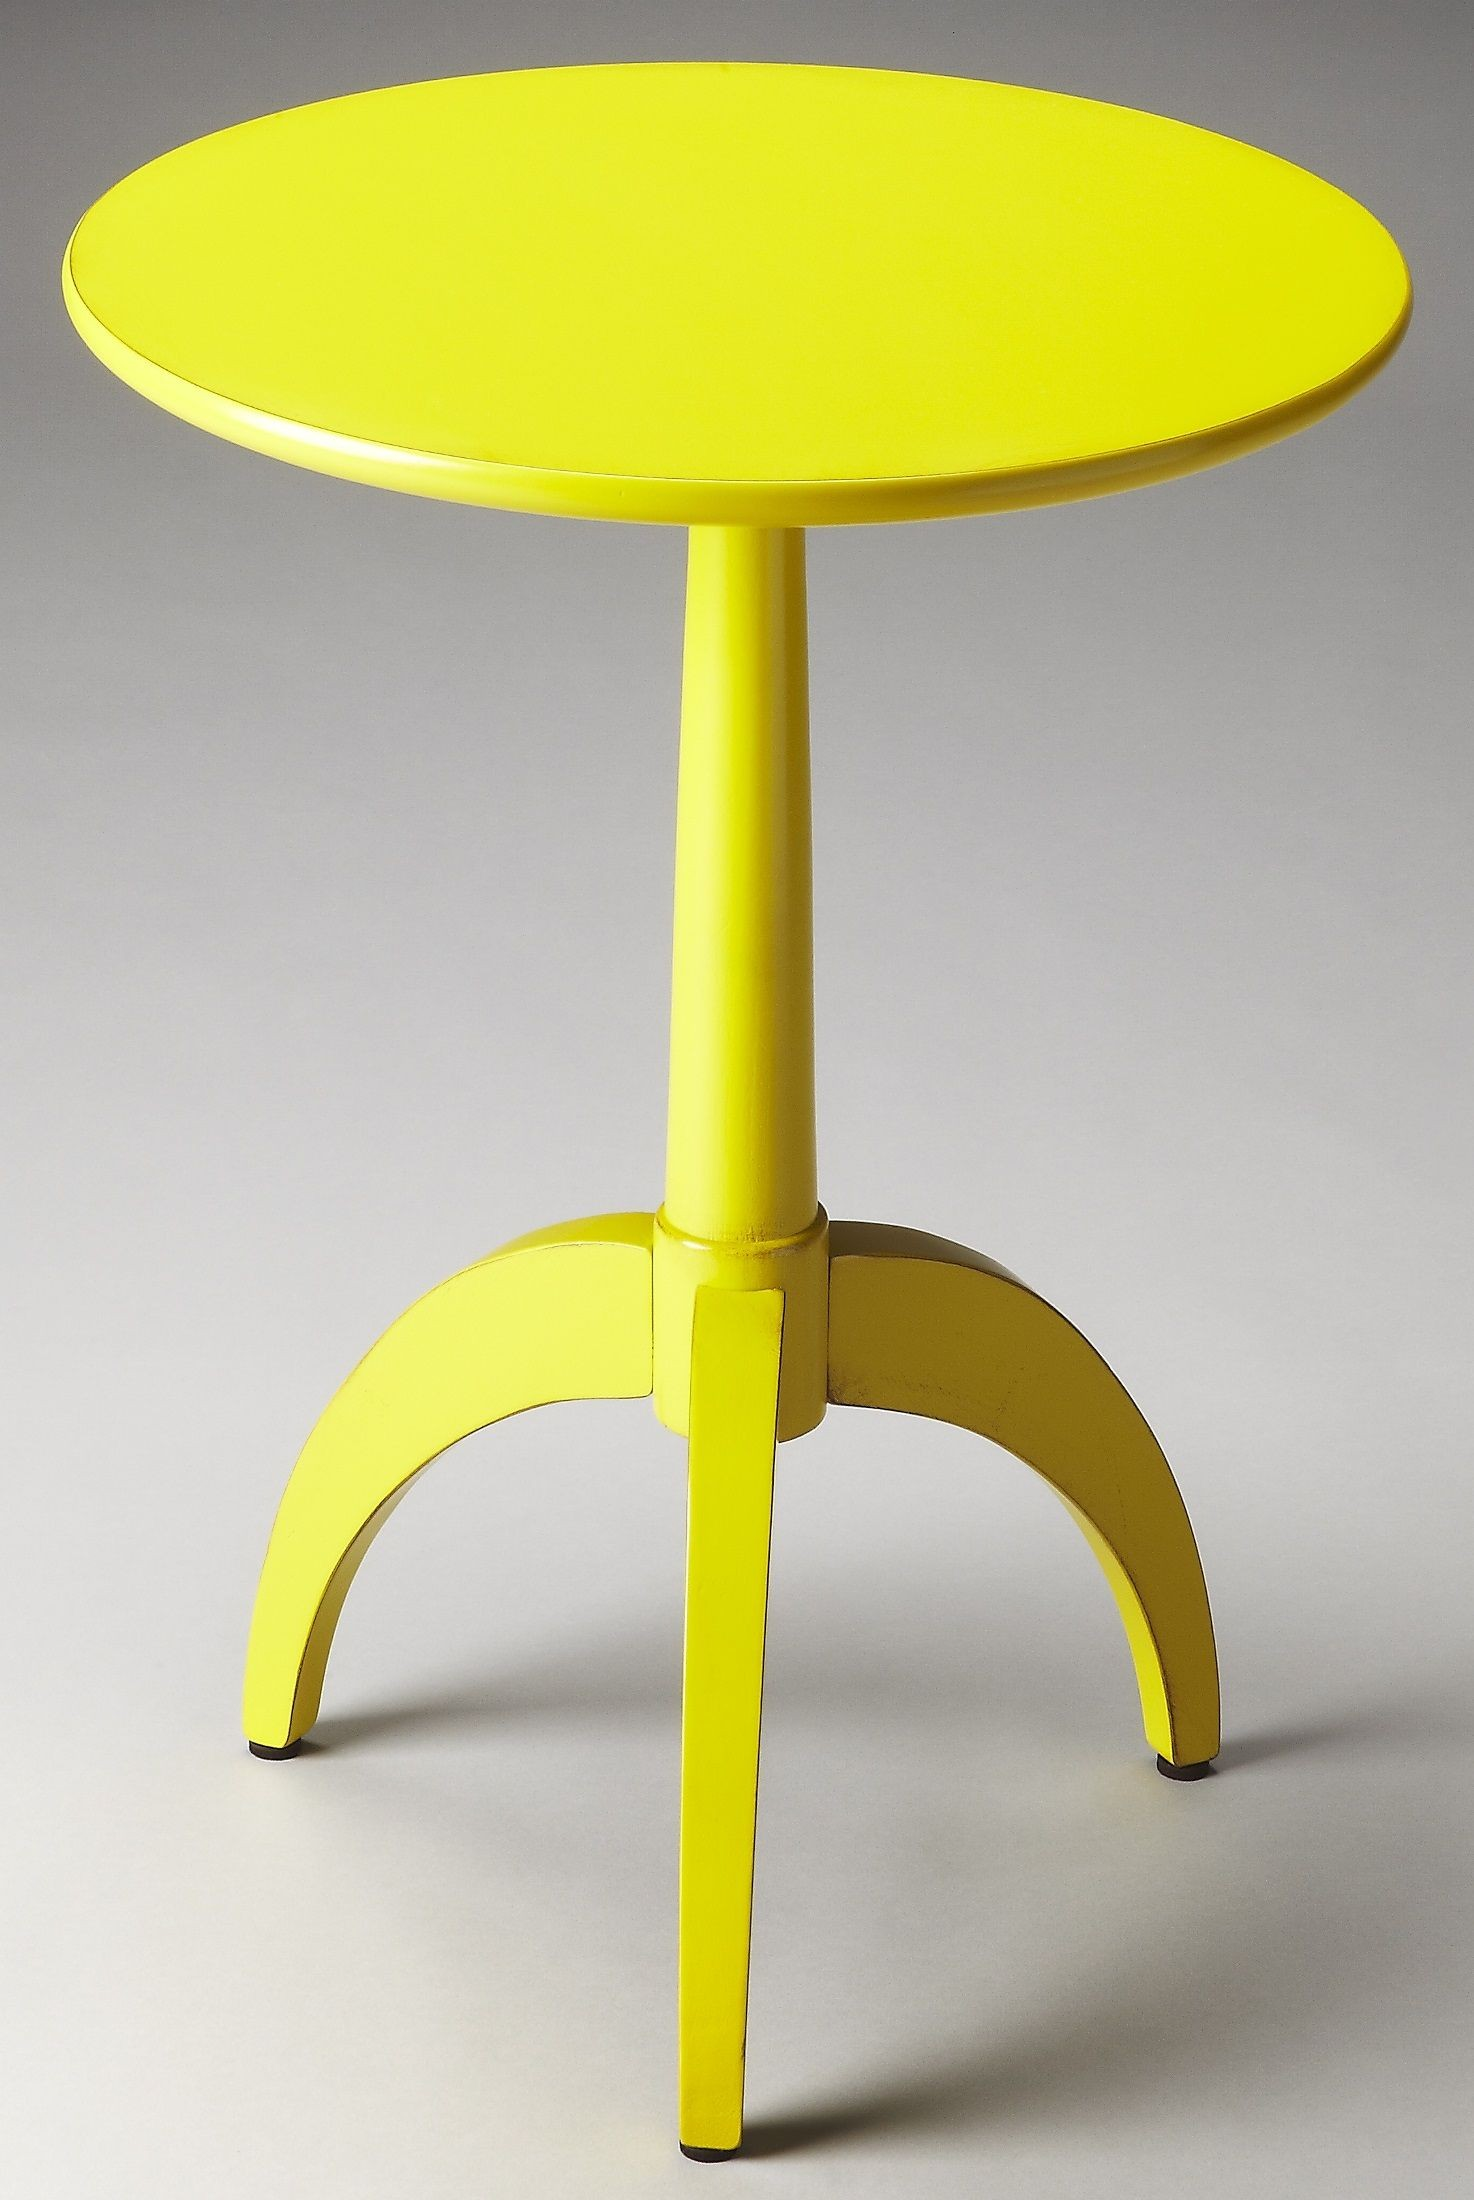 burbank loft yellow accent table from butler 1488289 coleman furniture